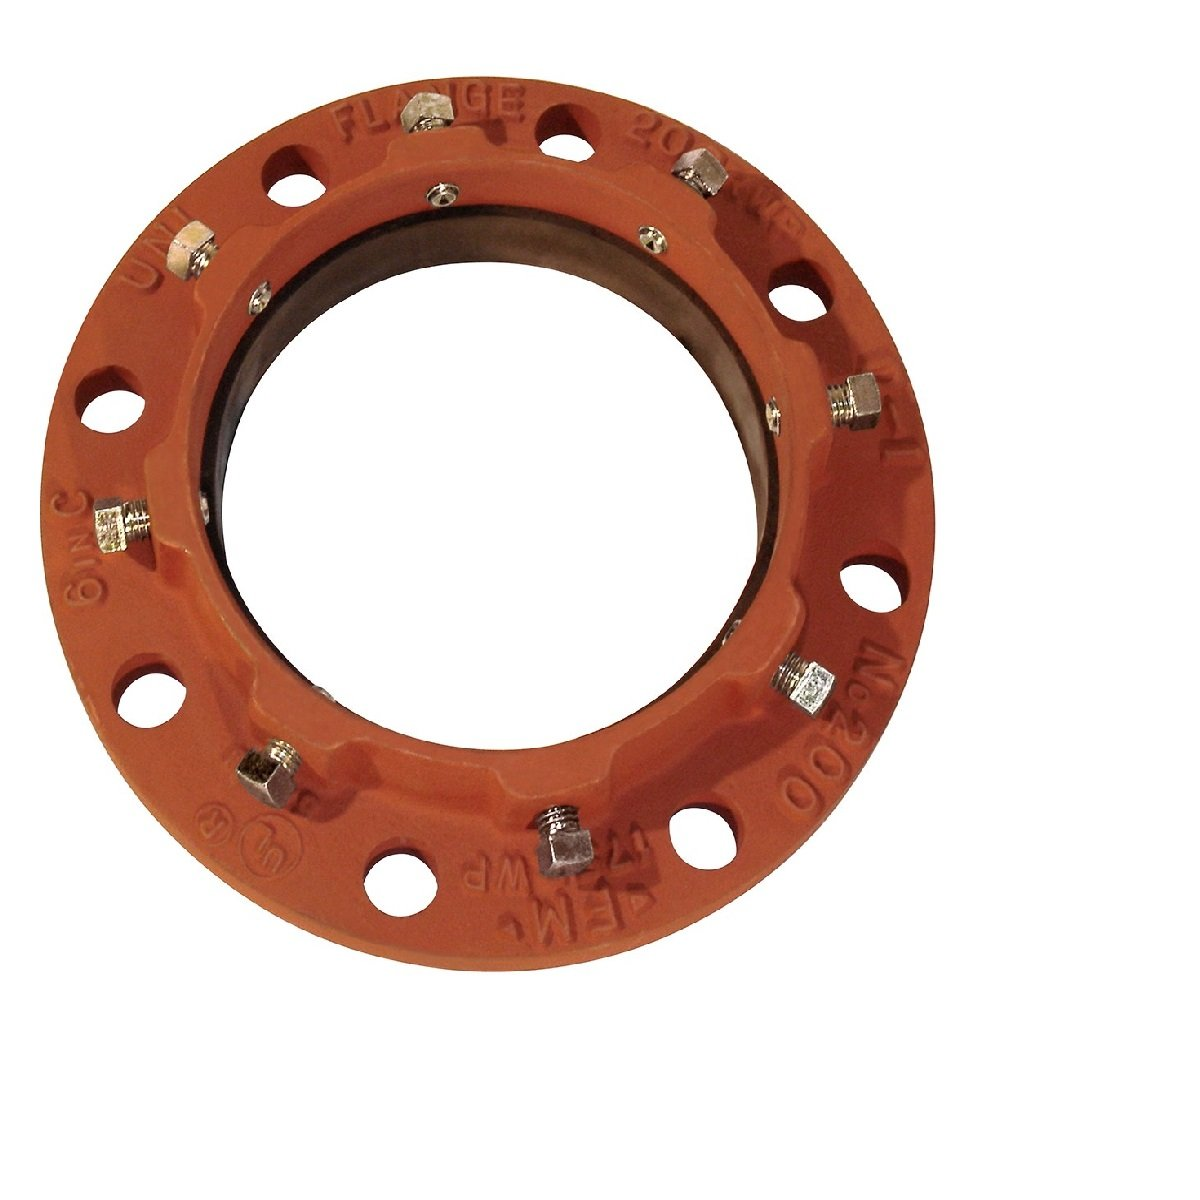 Series 200/400 Flange Adapters